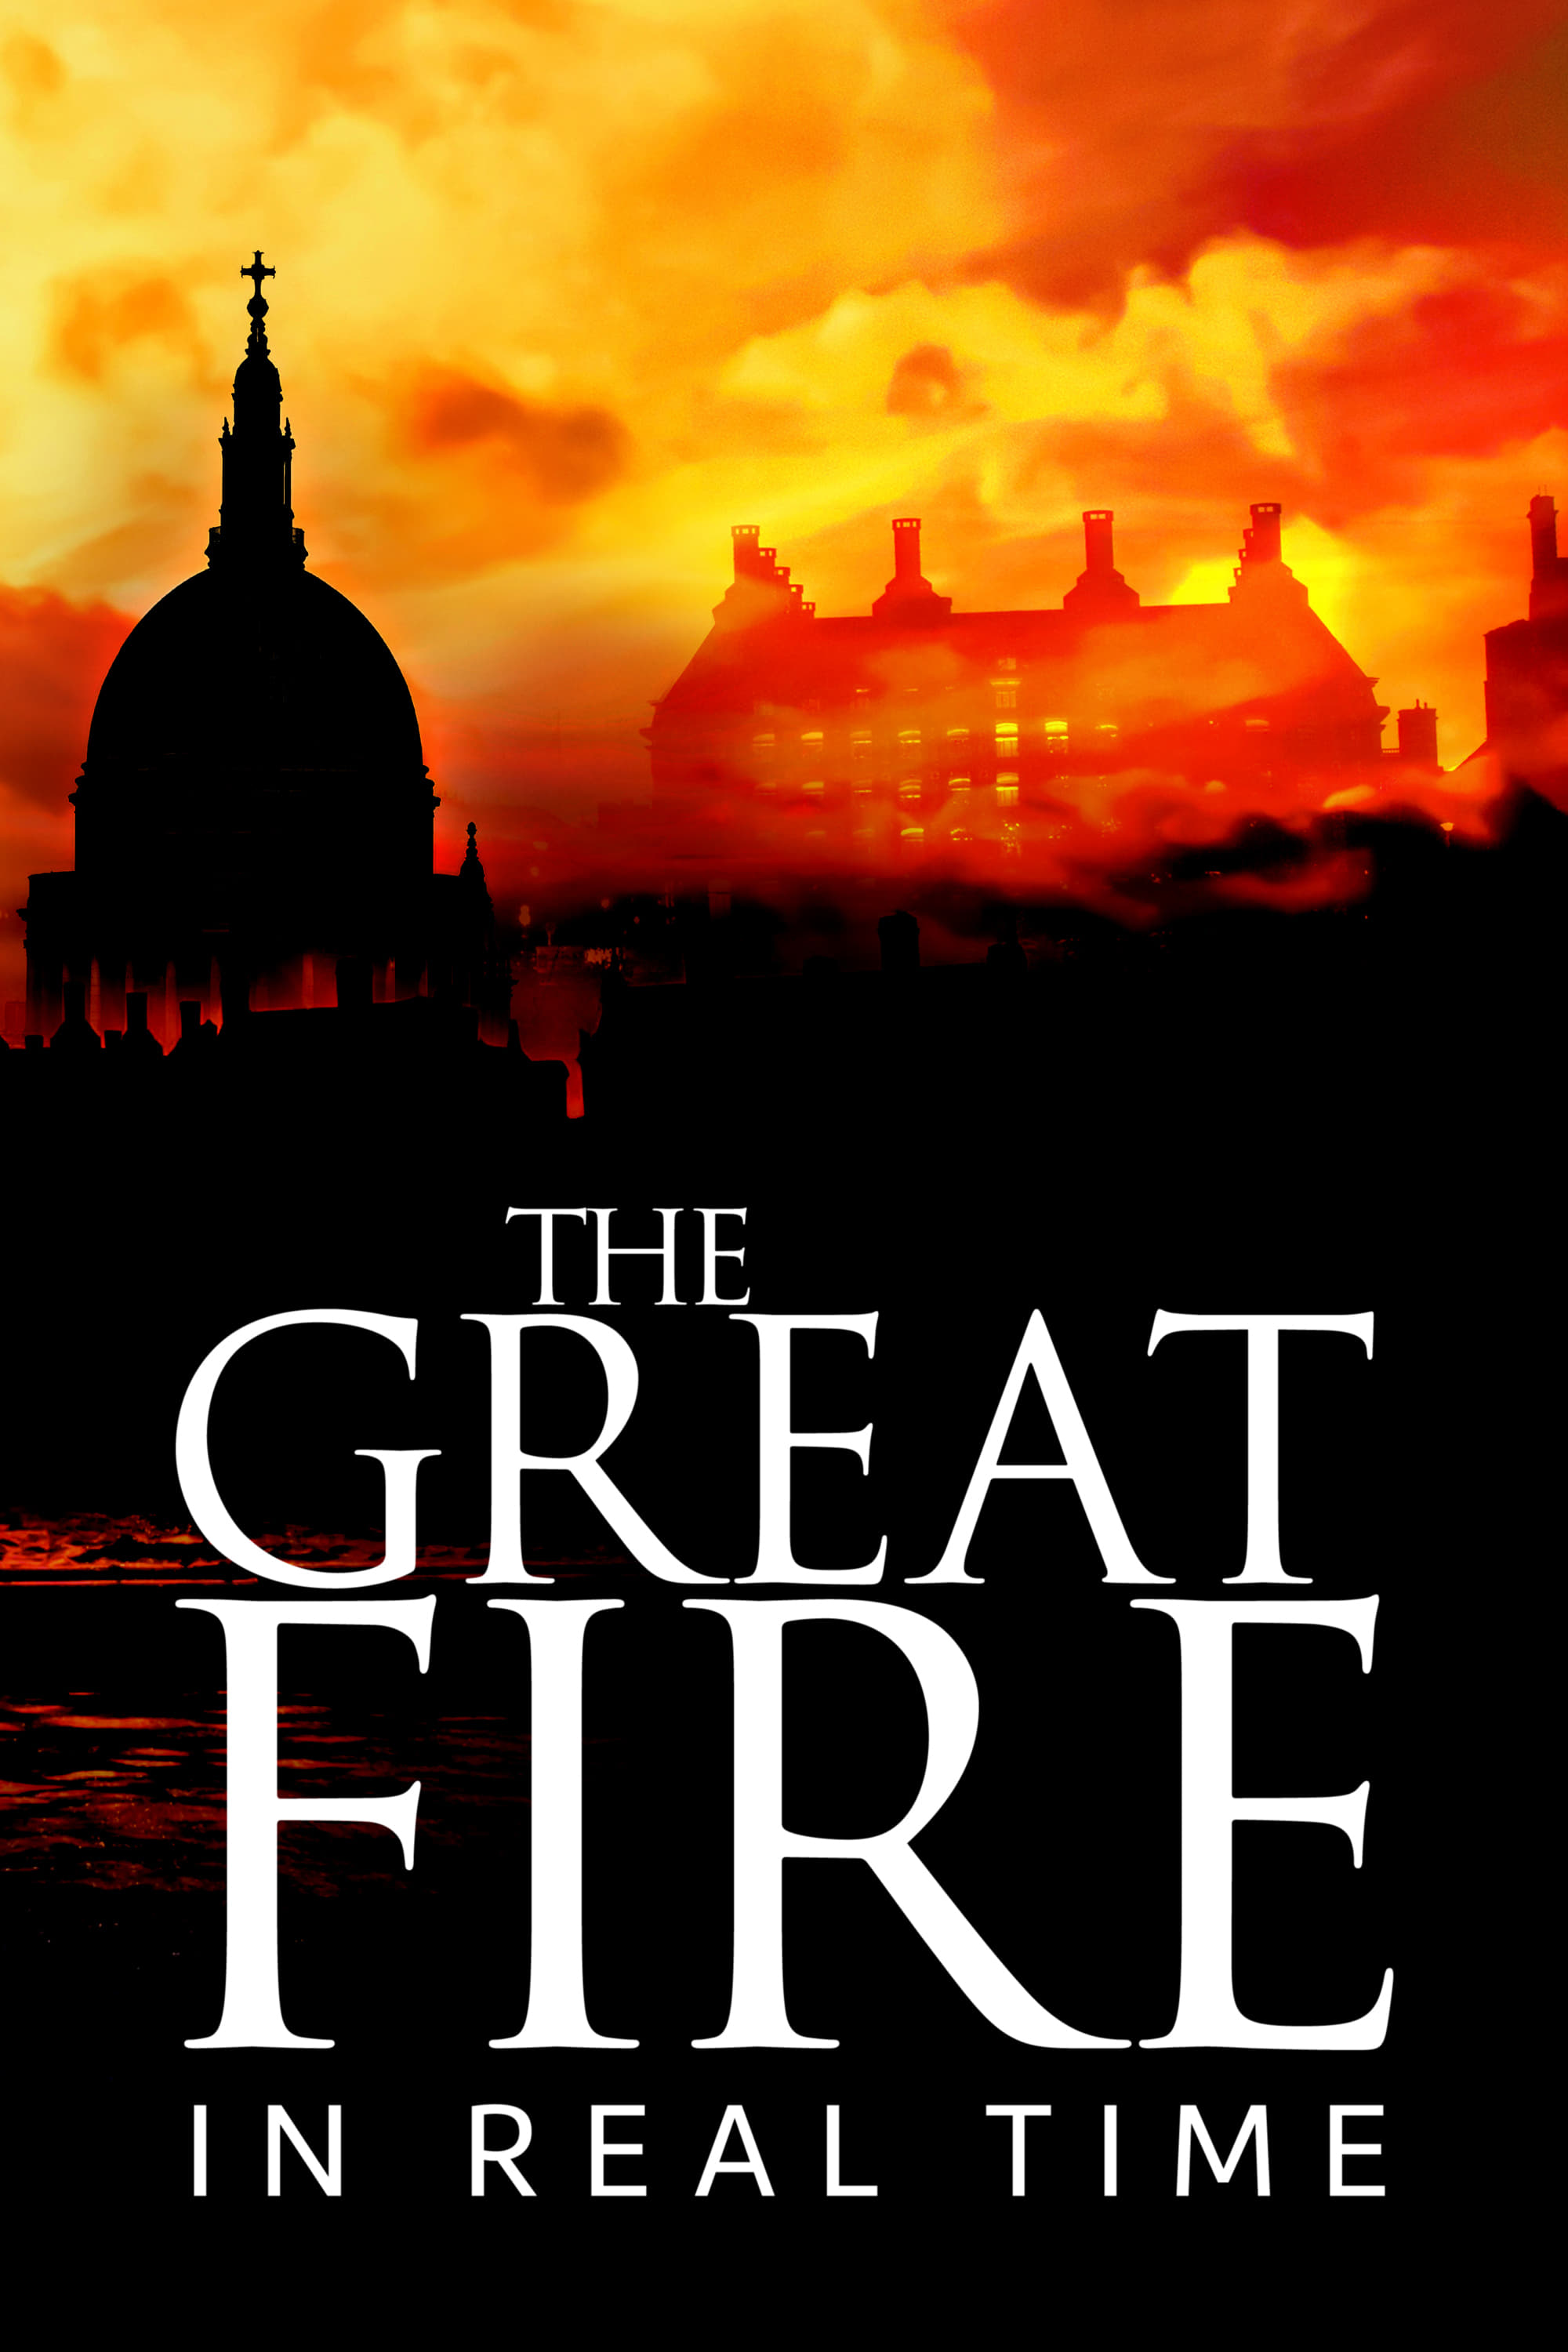 The Great Fire: In Real Time (2017)